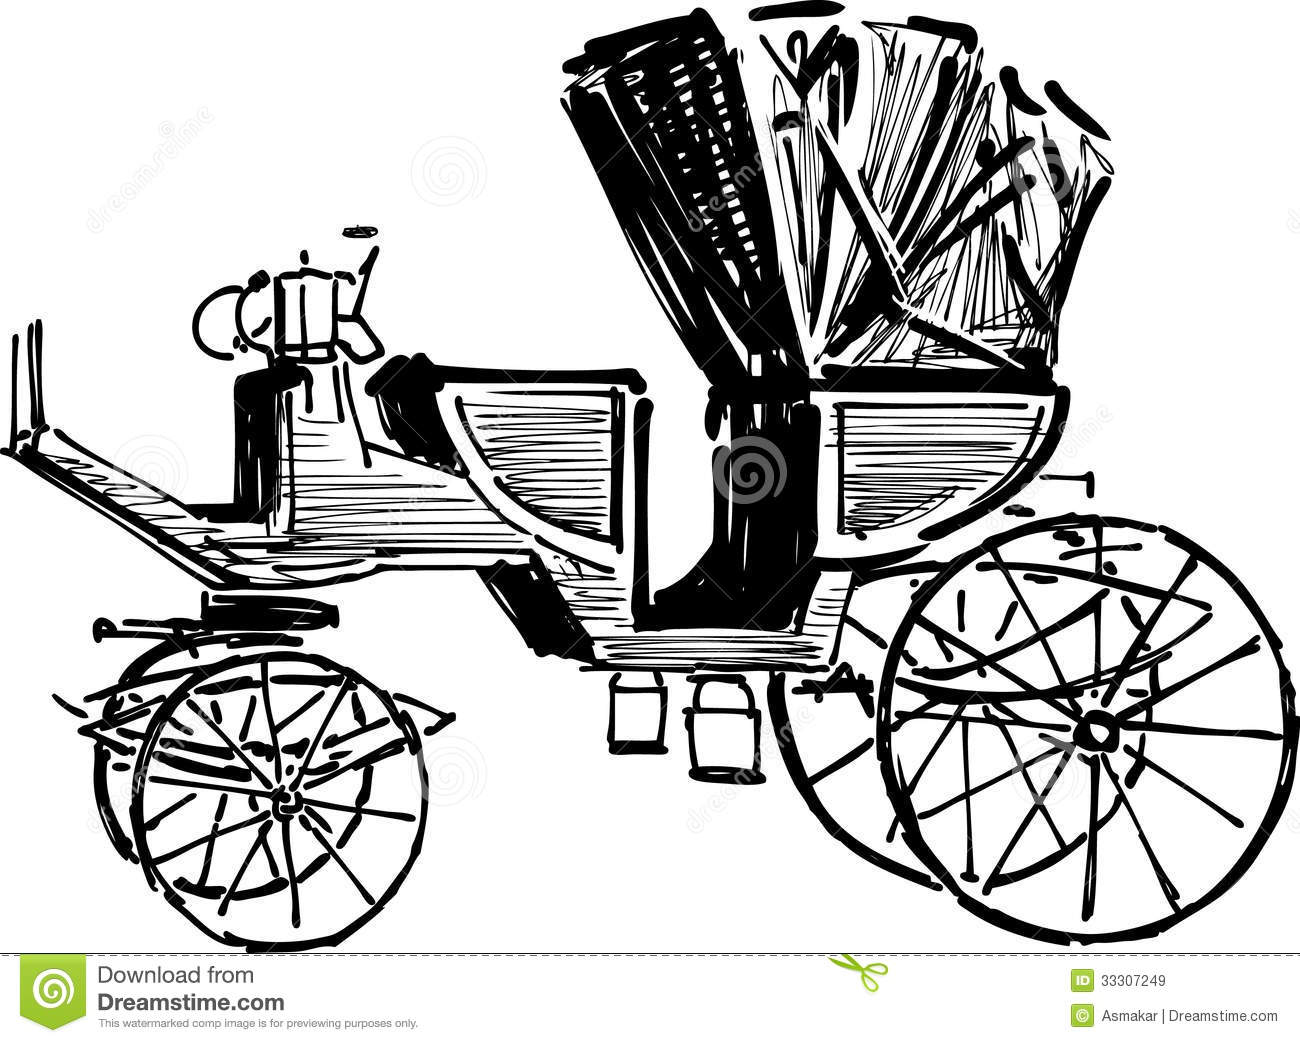 12429 additionally C01 early railways in addition Just Married Quarter Mark Stencil further Horse And Carriage Drawing also File Phaeton  PSF. on horse drawn carriage